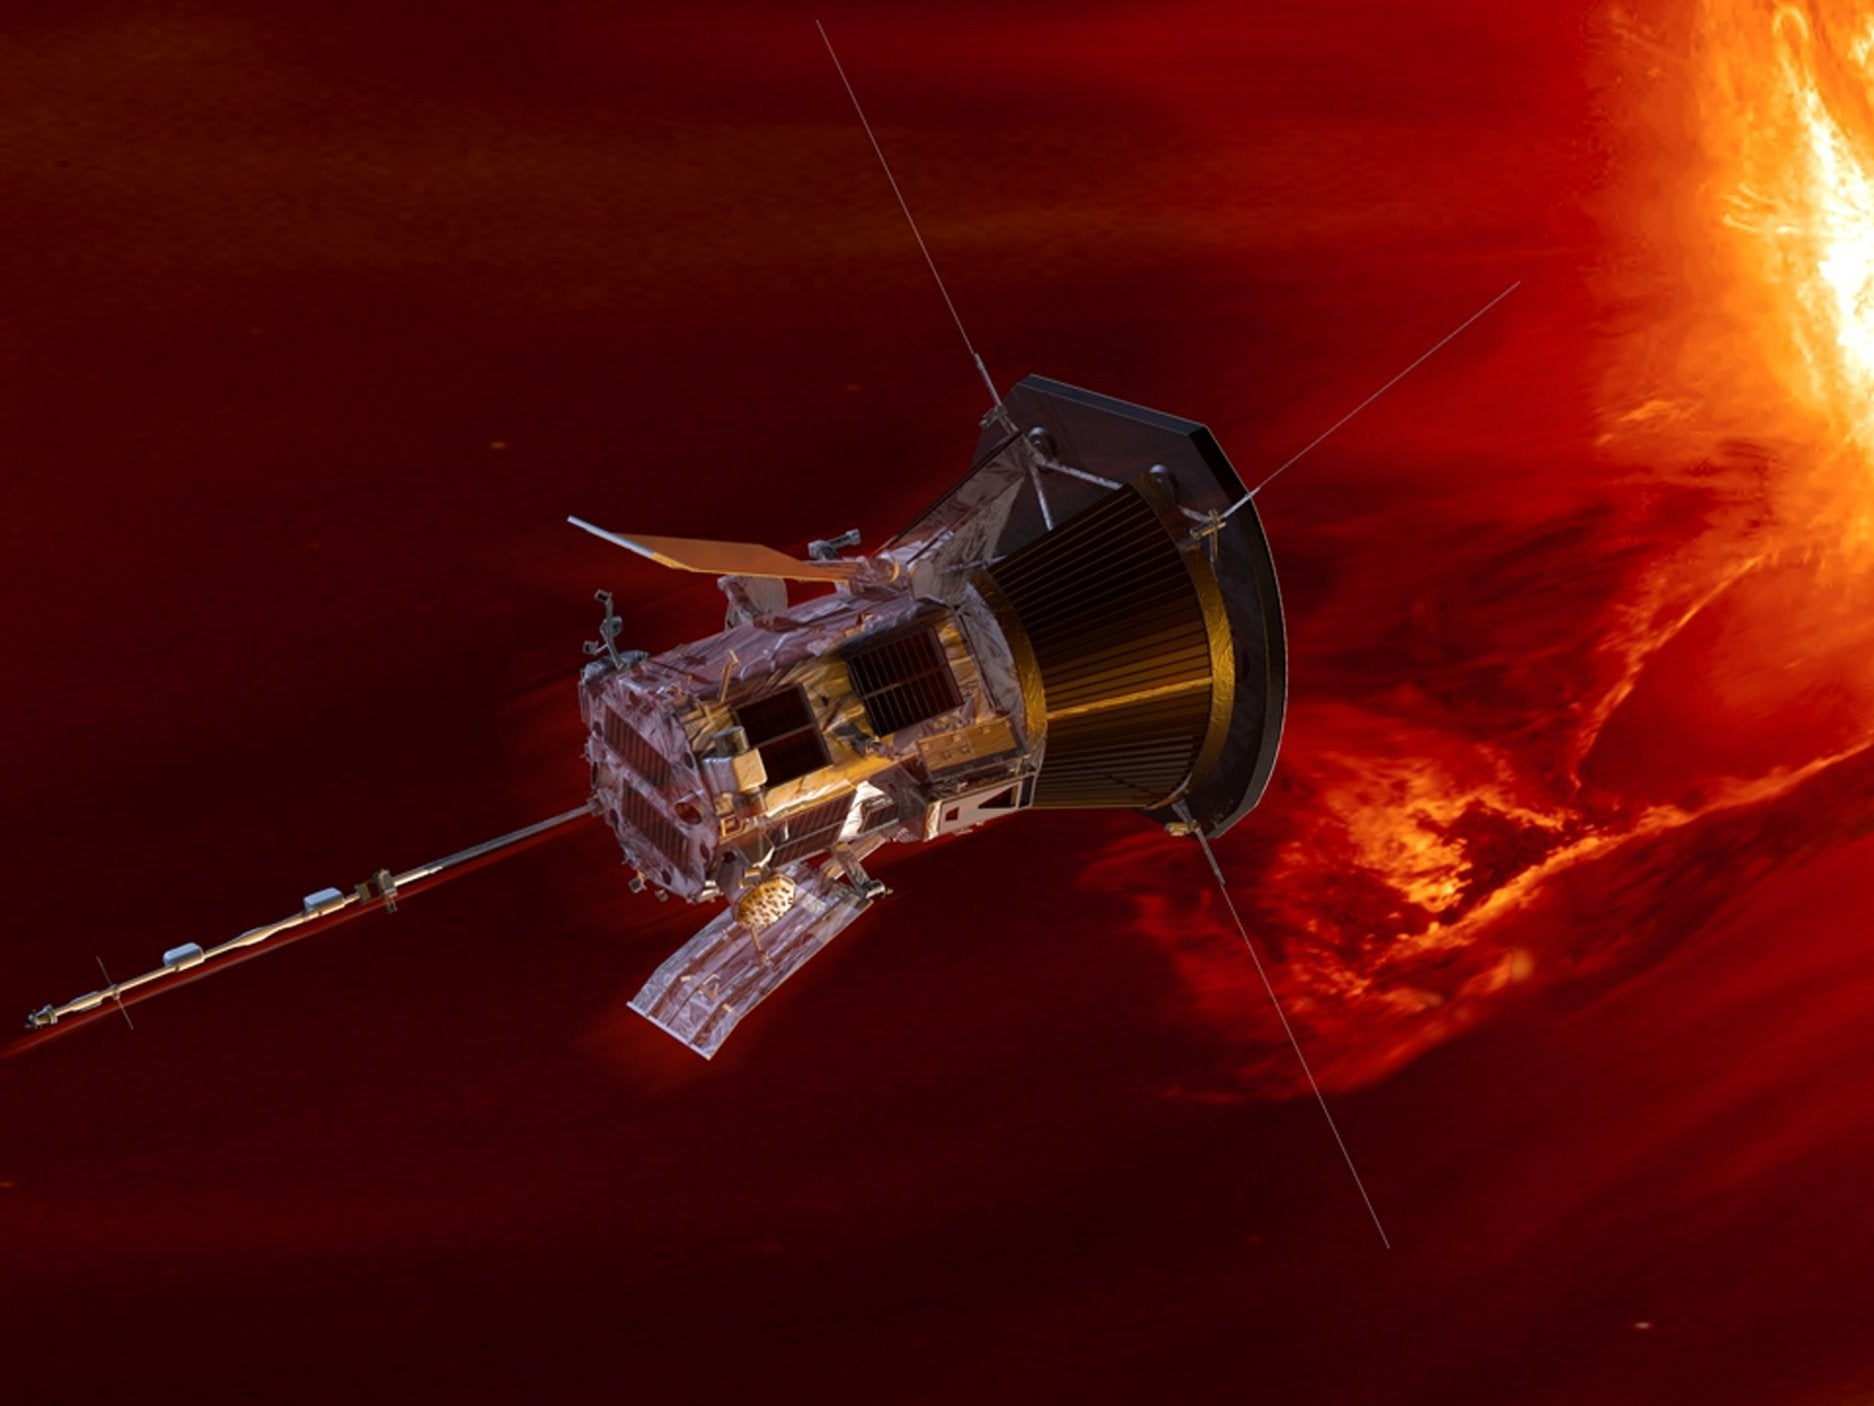 Nasa says Parker Solar Probe is closer to the Sun than anything before